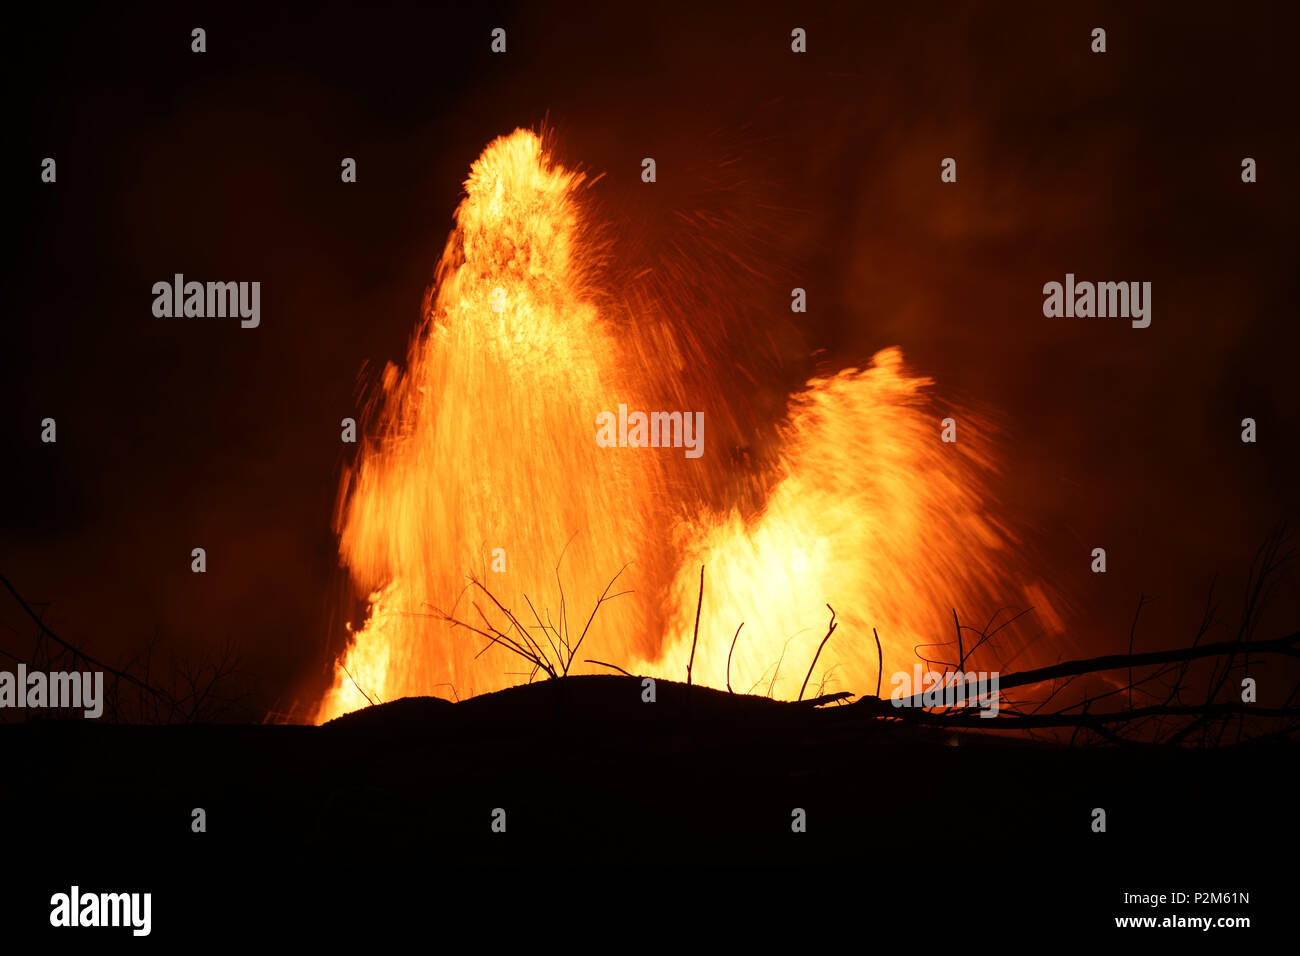 Volcanic eruption of Kilauea volcano in Hawaii at the end of May 2018, Fissure 8 - Stock Image